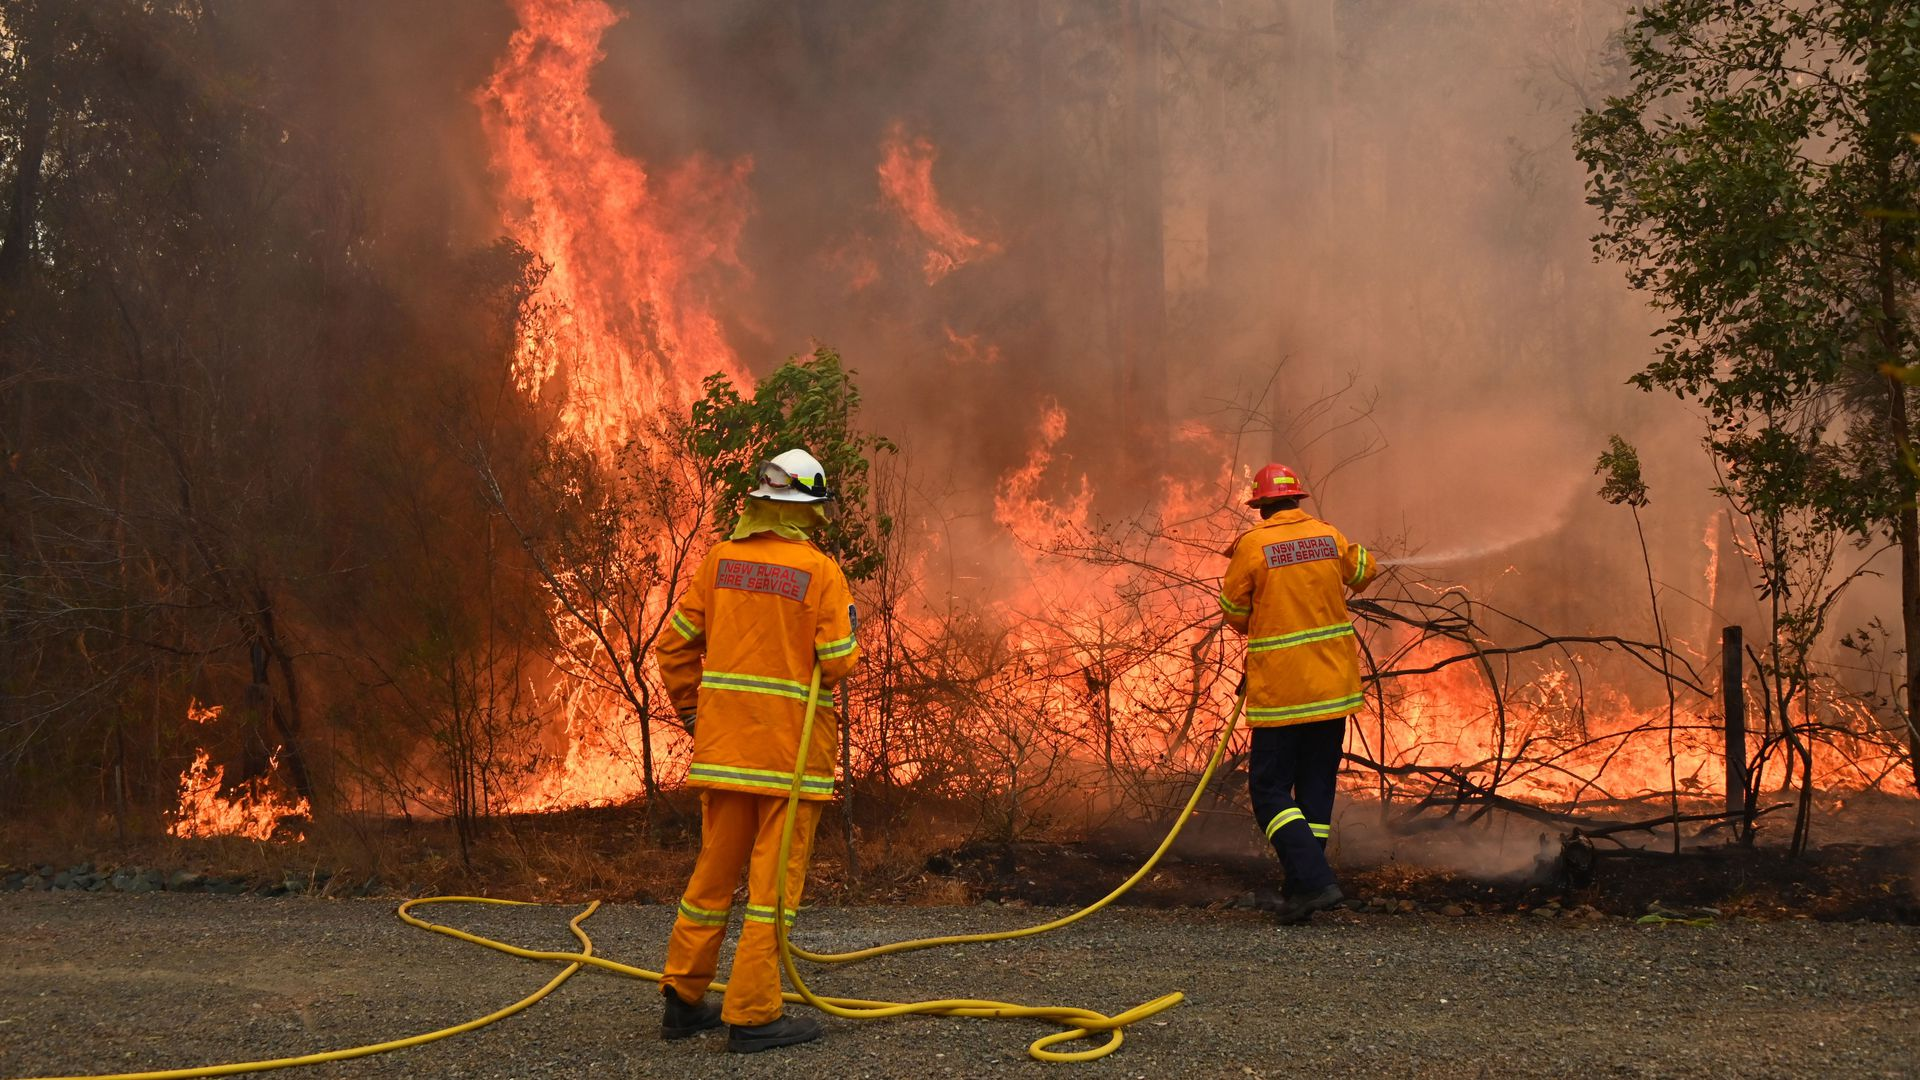 In photos: Deadly wildfires trigger state of emergency declarations in eastern Australia